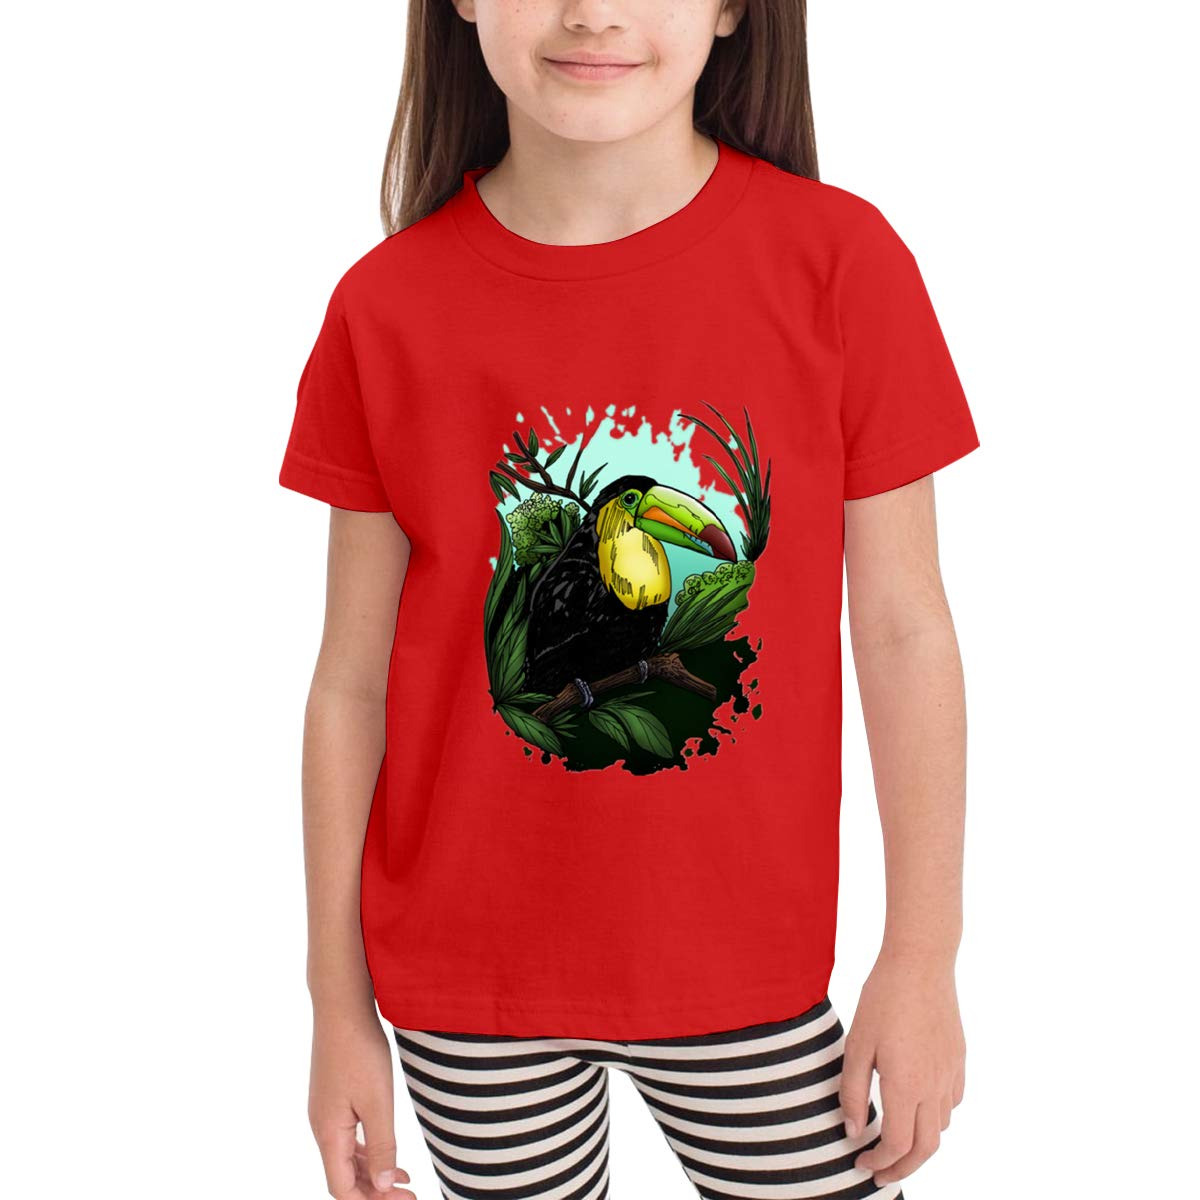 Onlybabycare Toucan 100/% Cotton Toddler Baby Boys Girls Kids Short Sleeve T Shirt Top Tee Clothes 2-6 T